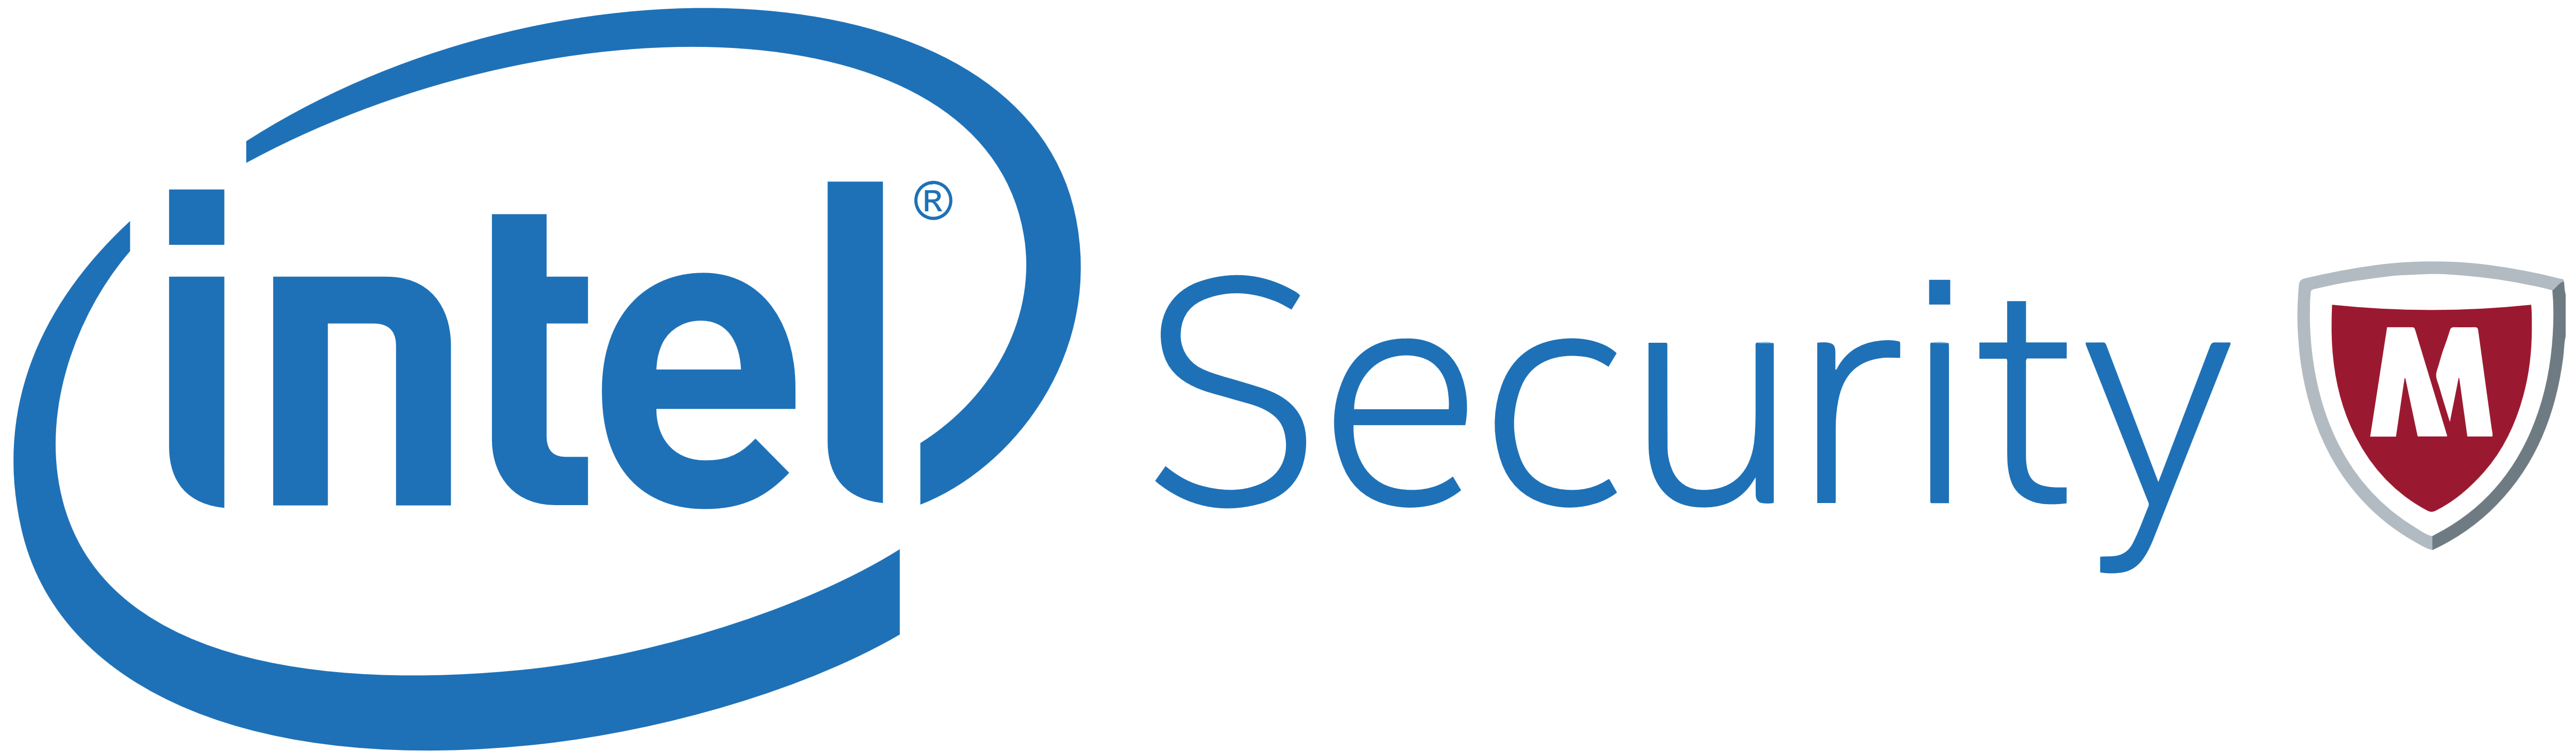 Intel Security McAfee logo, logotype, emblem - Intel Logotype PNG